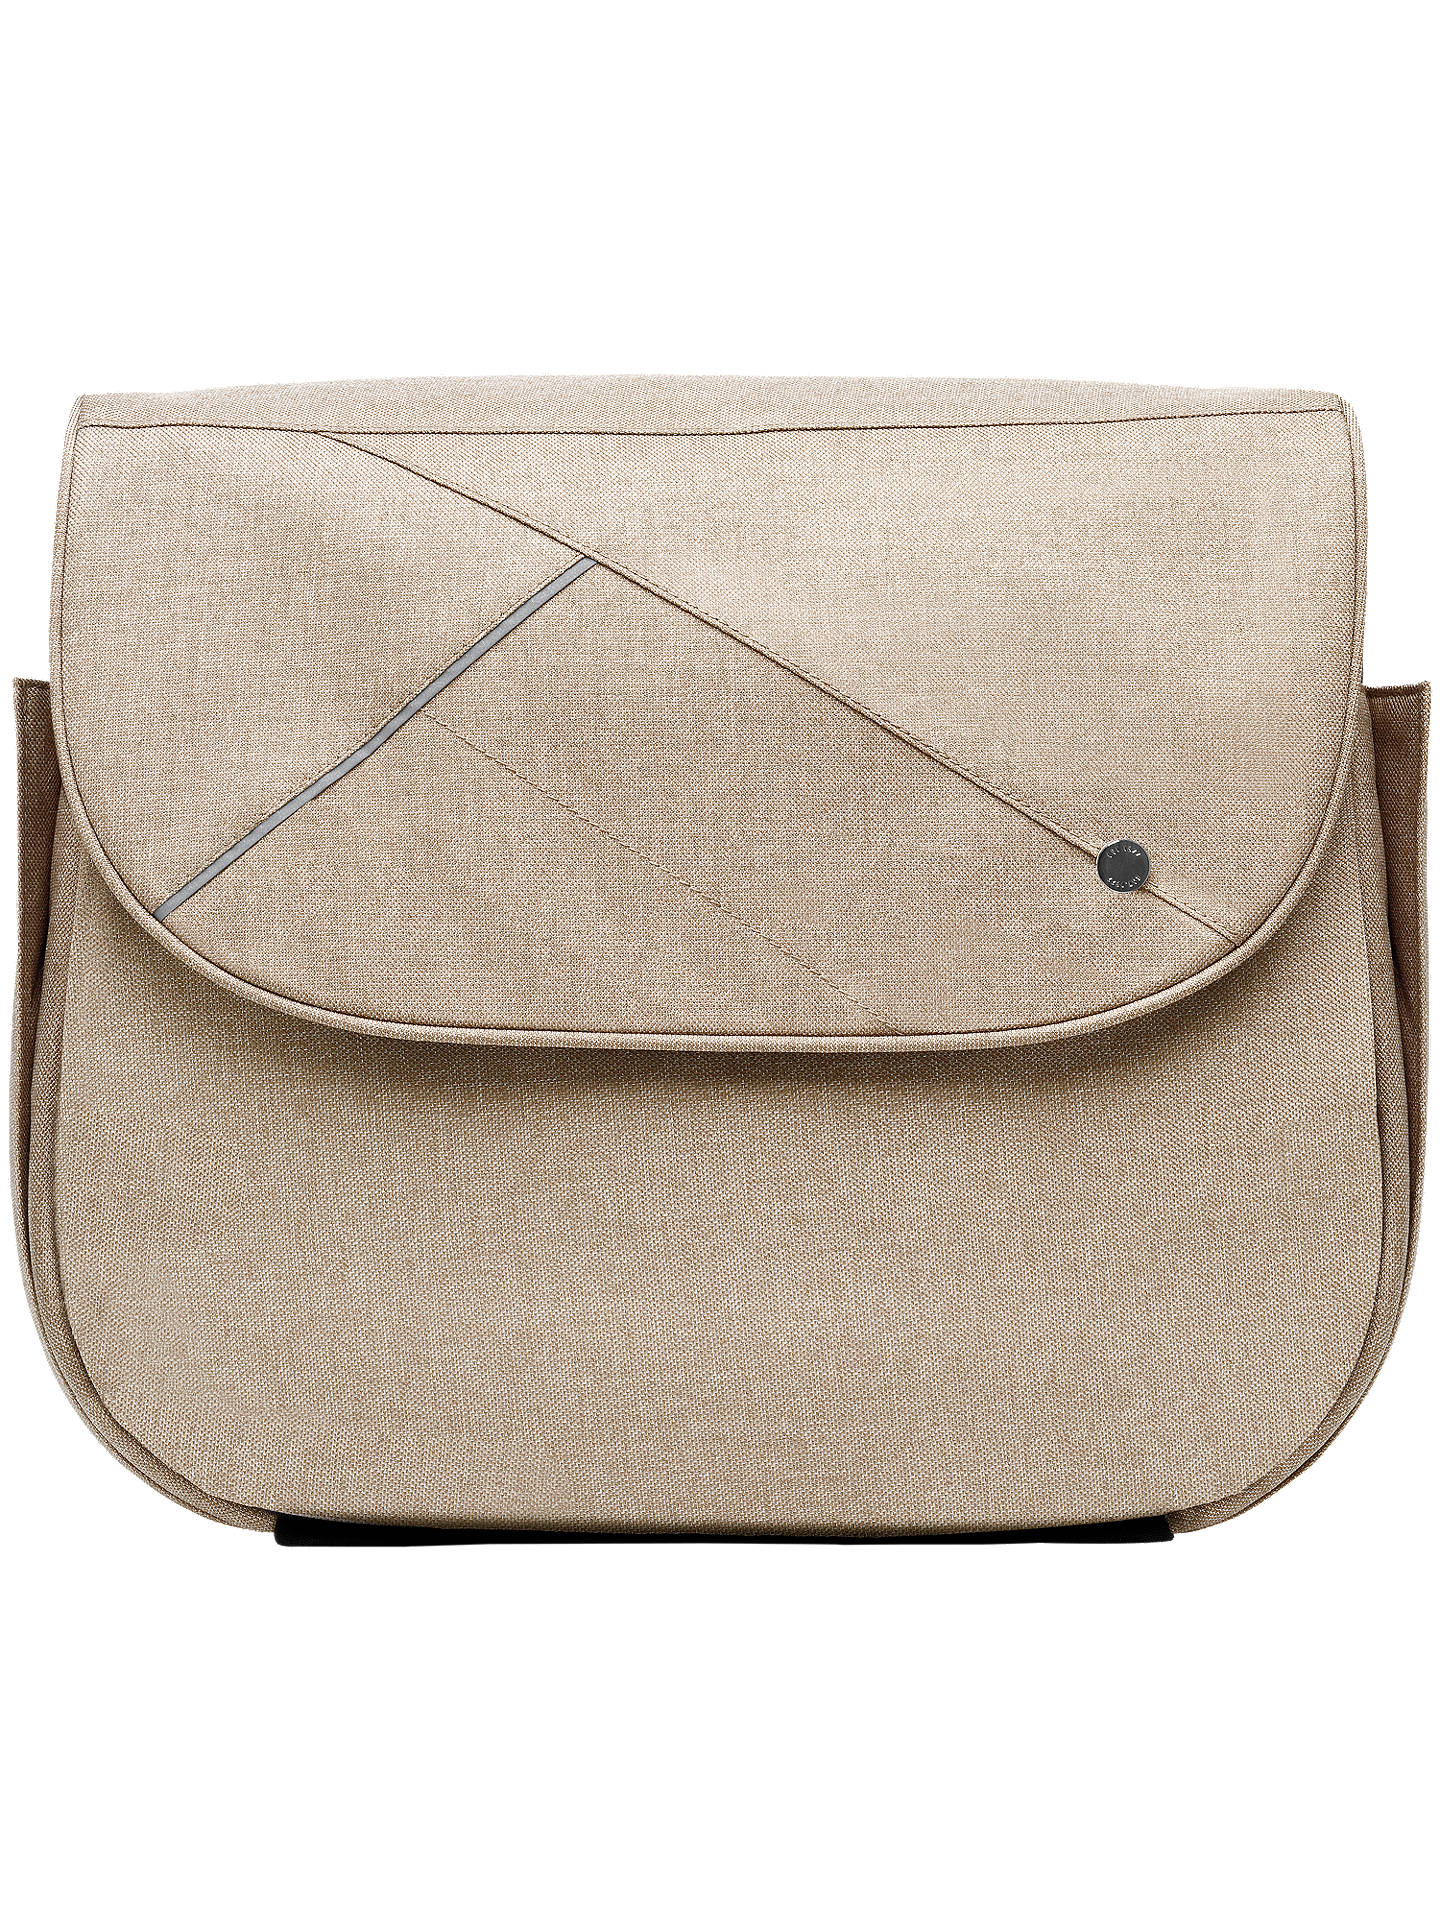 BuySilver Cross Changing Bag, Linen Online at johnlewis.com